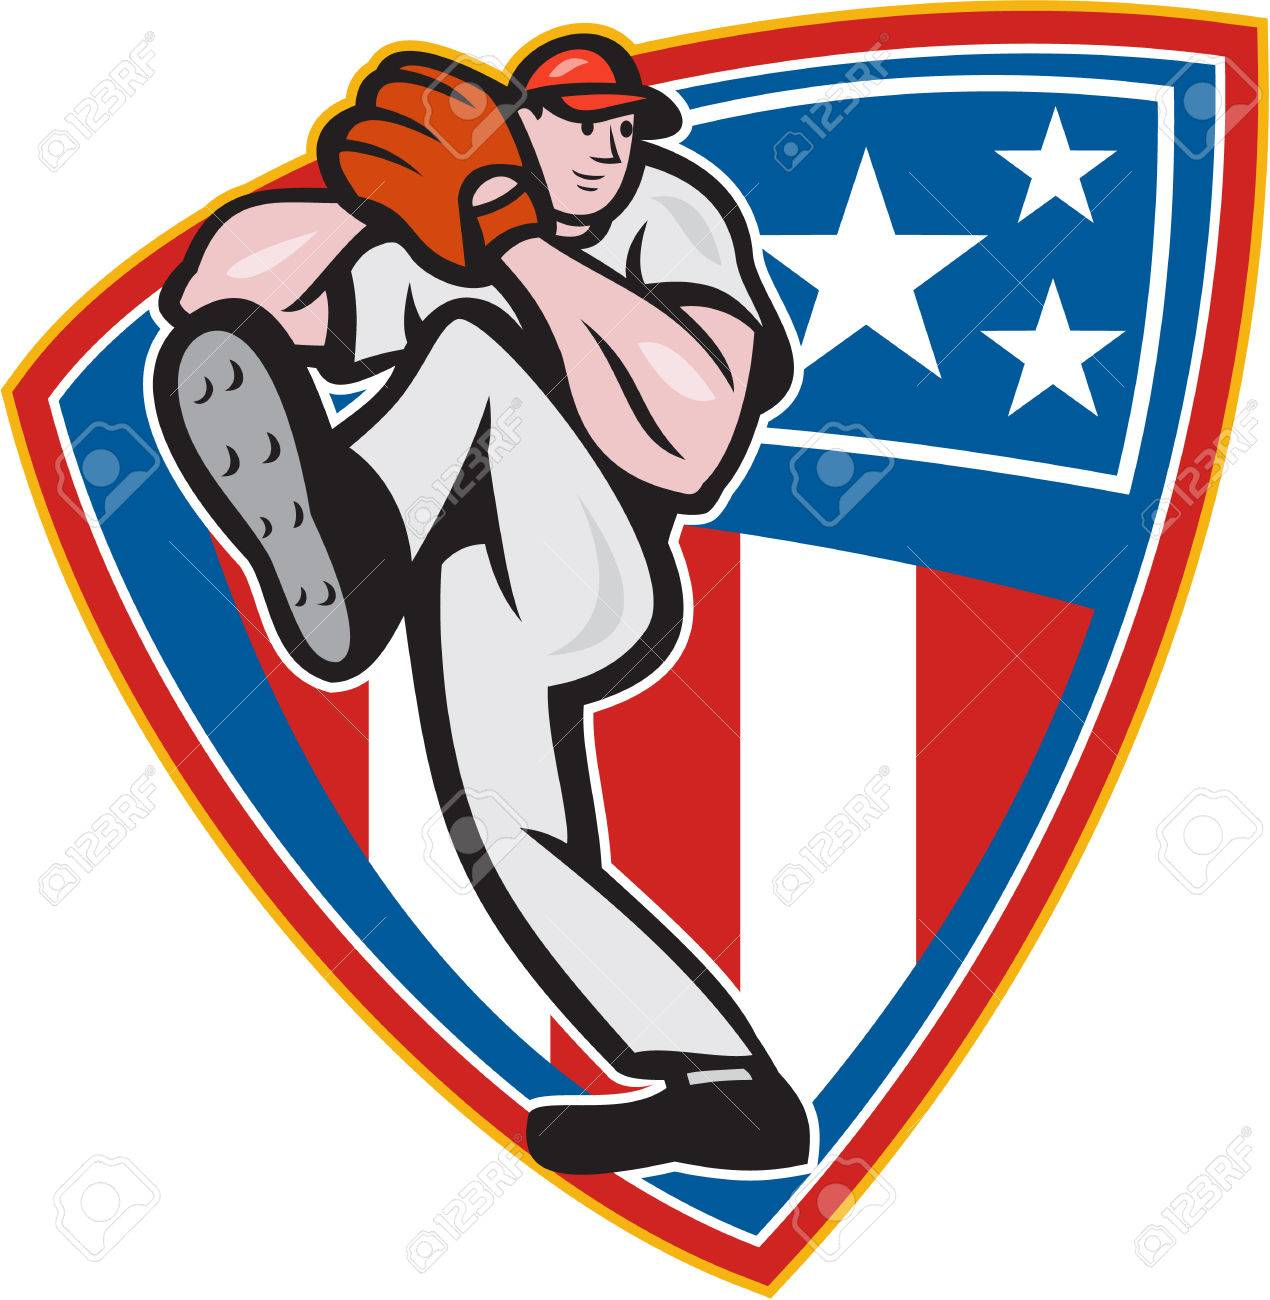 Illustration of a american baseball player pitcher outfilelder throwing ball set inside stars and stripes shield isolated on white background. Stock Vector - 22605474